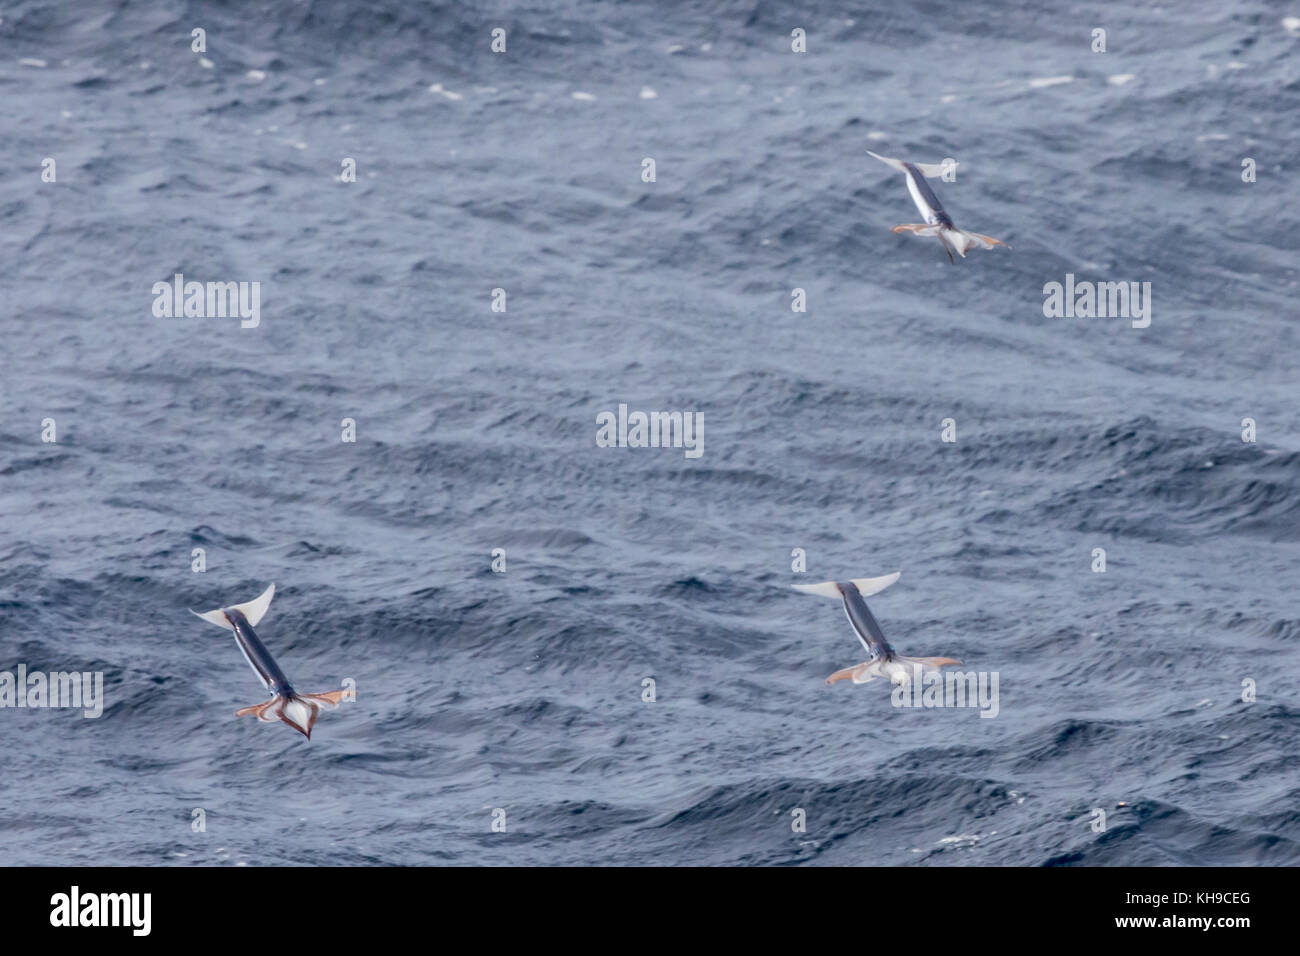 Little known flying squid take off from the water by jet propulsion to escape predation in the middle of the Atlantic - Stock Image